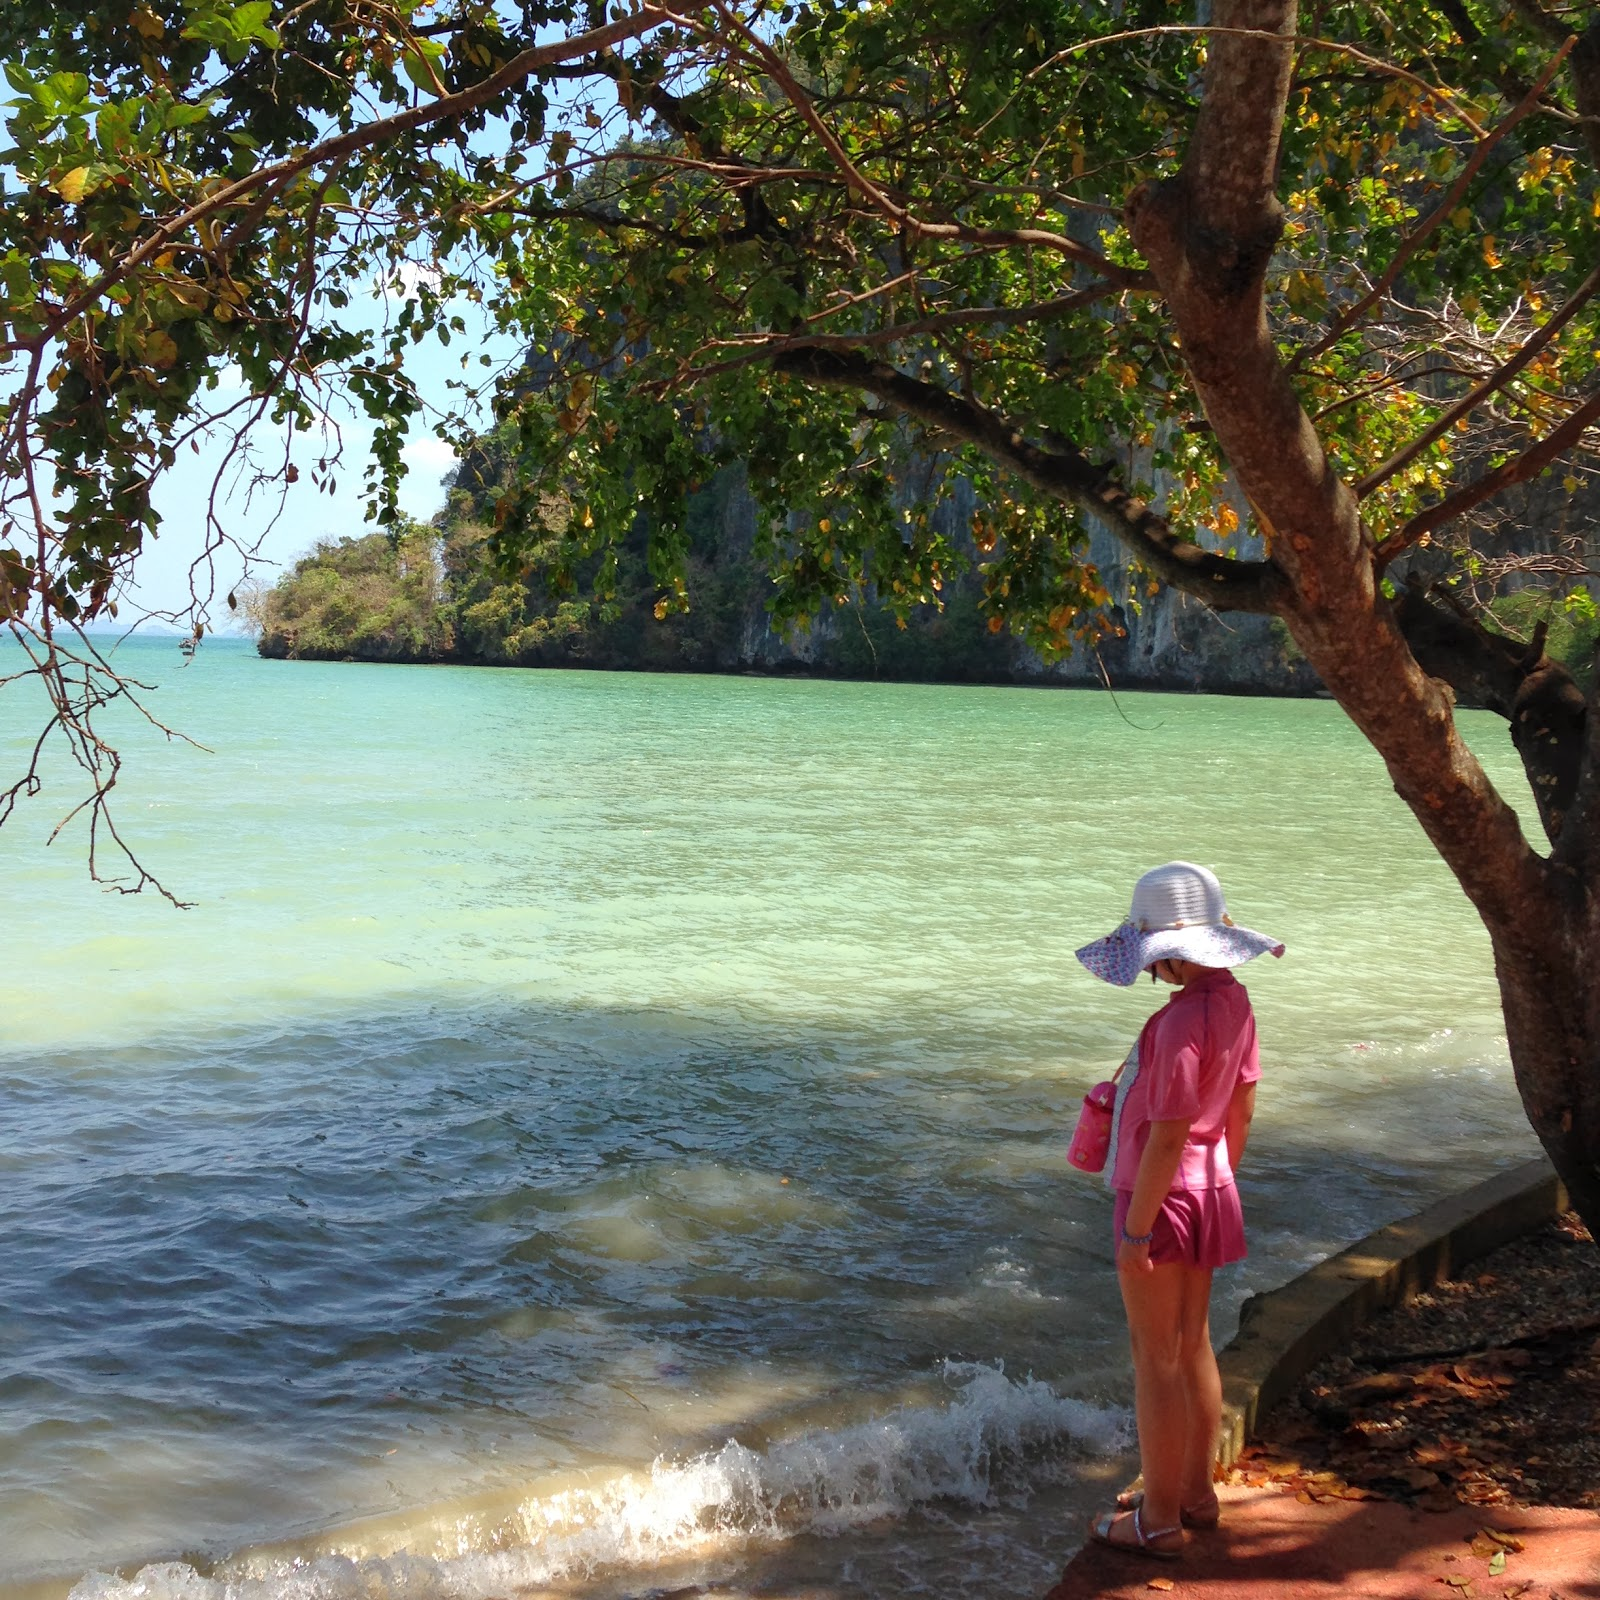 """<a href=""""http://vionm.com/"""">Thailand</a> <a href=""""http://vionm.com/things-to-do-in-bangkok-thailand/thailandhoneymoon-explore-the-beauty-of-koh-samui/"""">Beach</a>: Railay In Addition To Phra Nang <a href=""""http://vionm.com/things-to-do-in-bangkok-thailand/thailandhoneymoon-explore-the-beauty-of-koh-samui/"""">Beach</a>es, <a href=""""http://vionm.com/"""">Thailand</a>"""